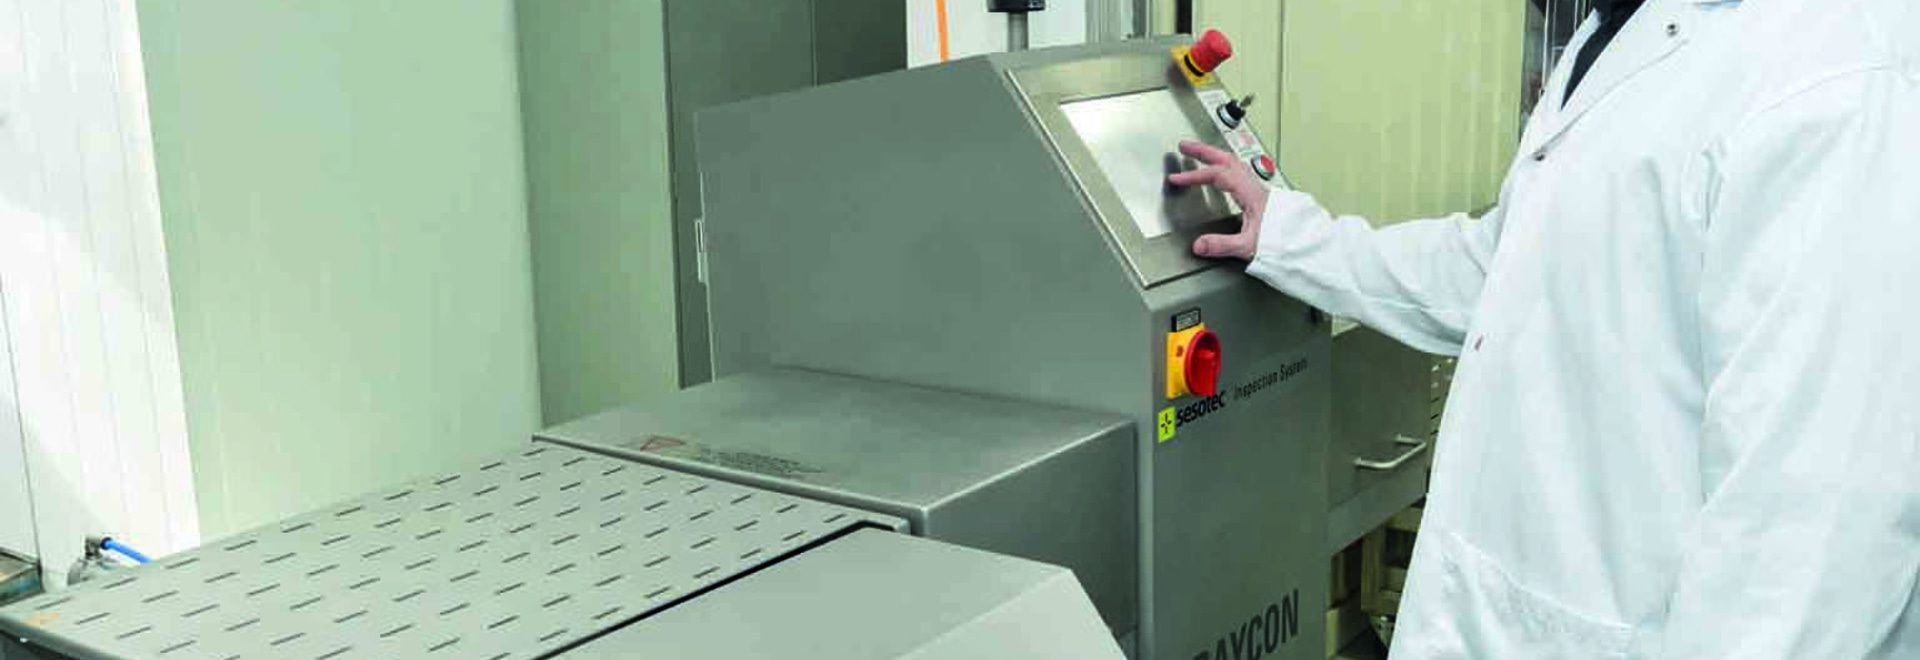 The Canadian sausage manufacturer dedided to use a RAYCON x-ray inspection system from Sesotec to meet the requrirements for SQF-certification.